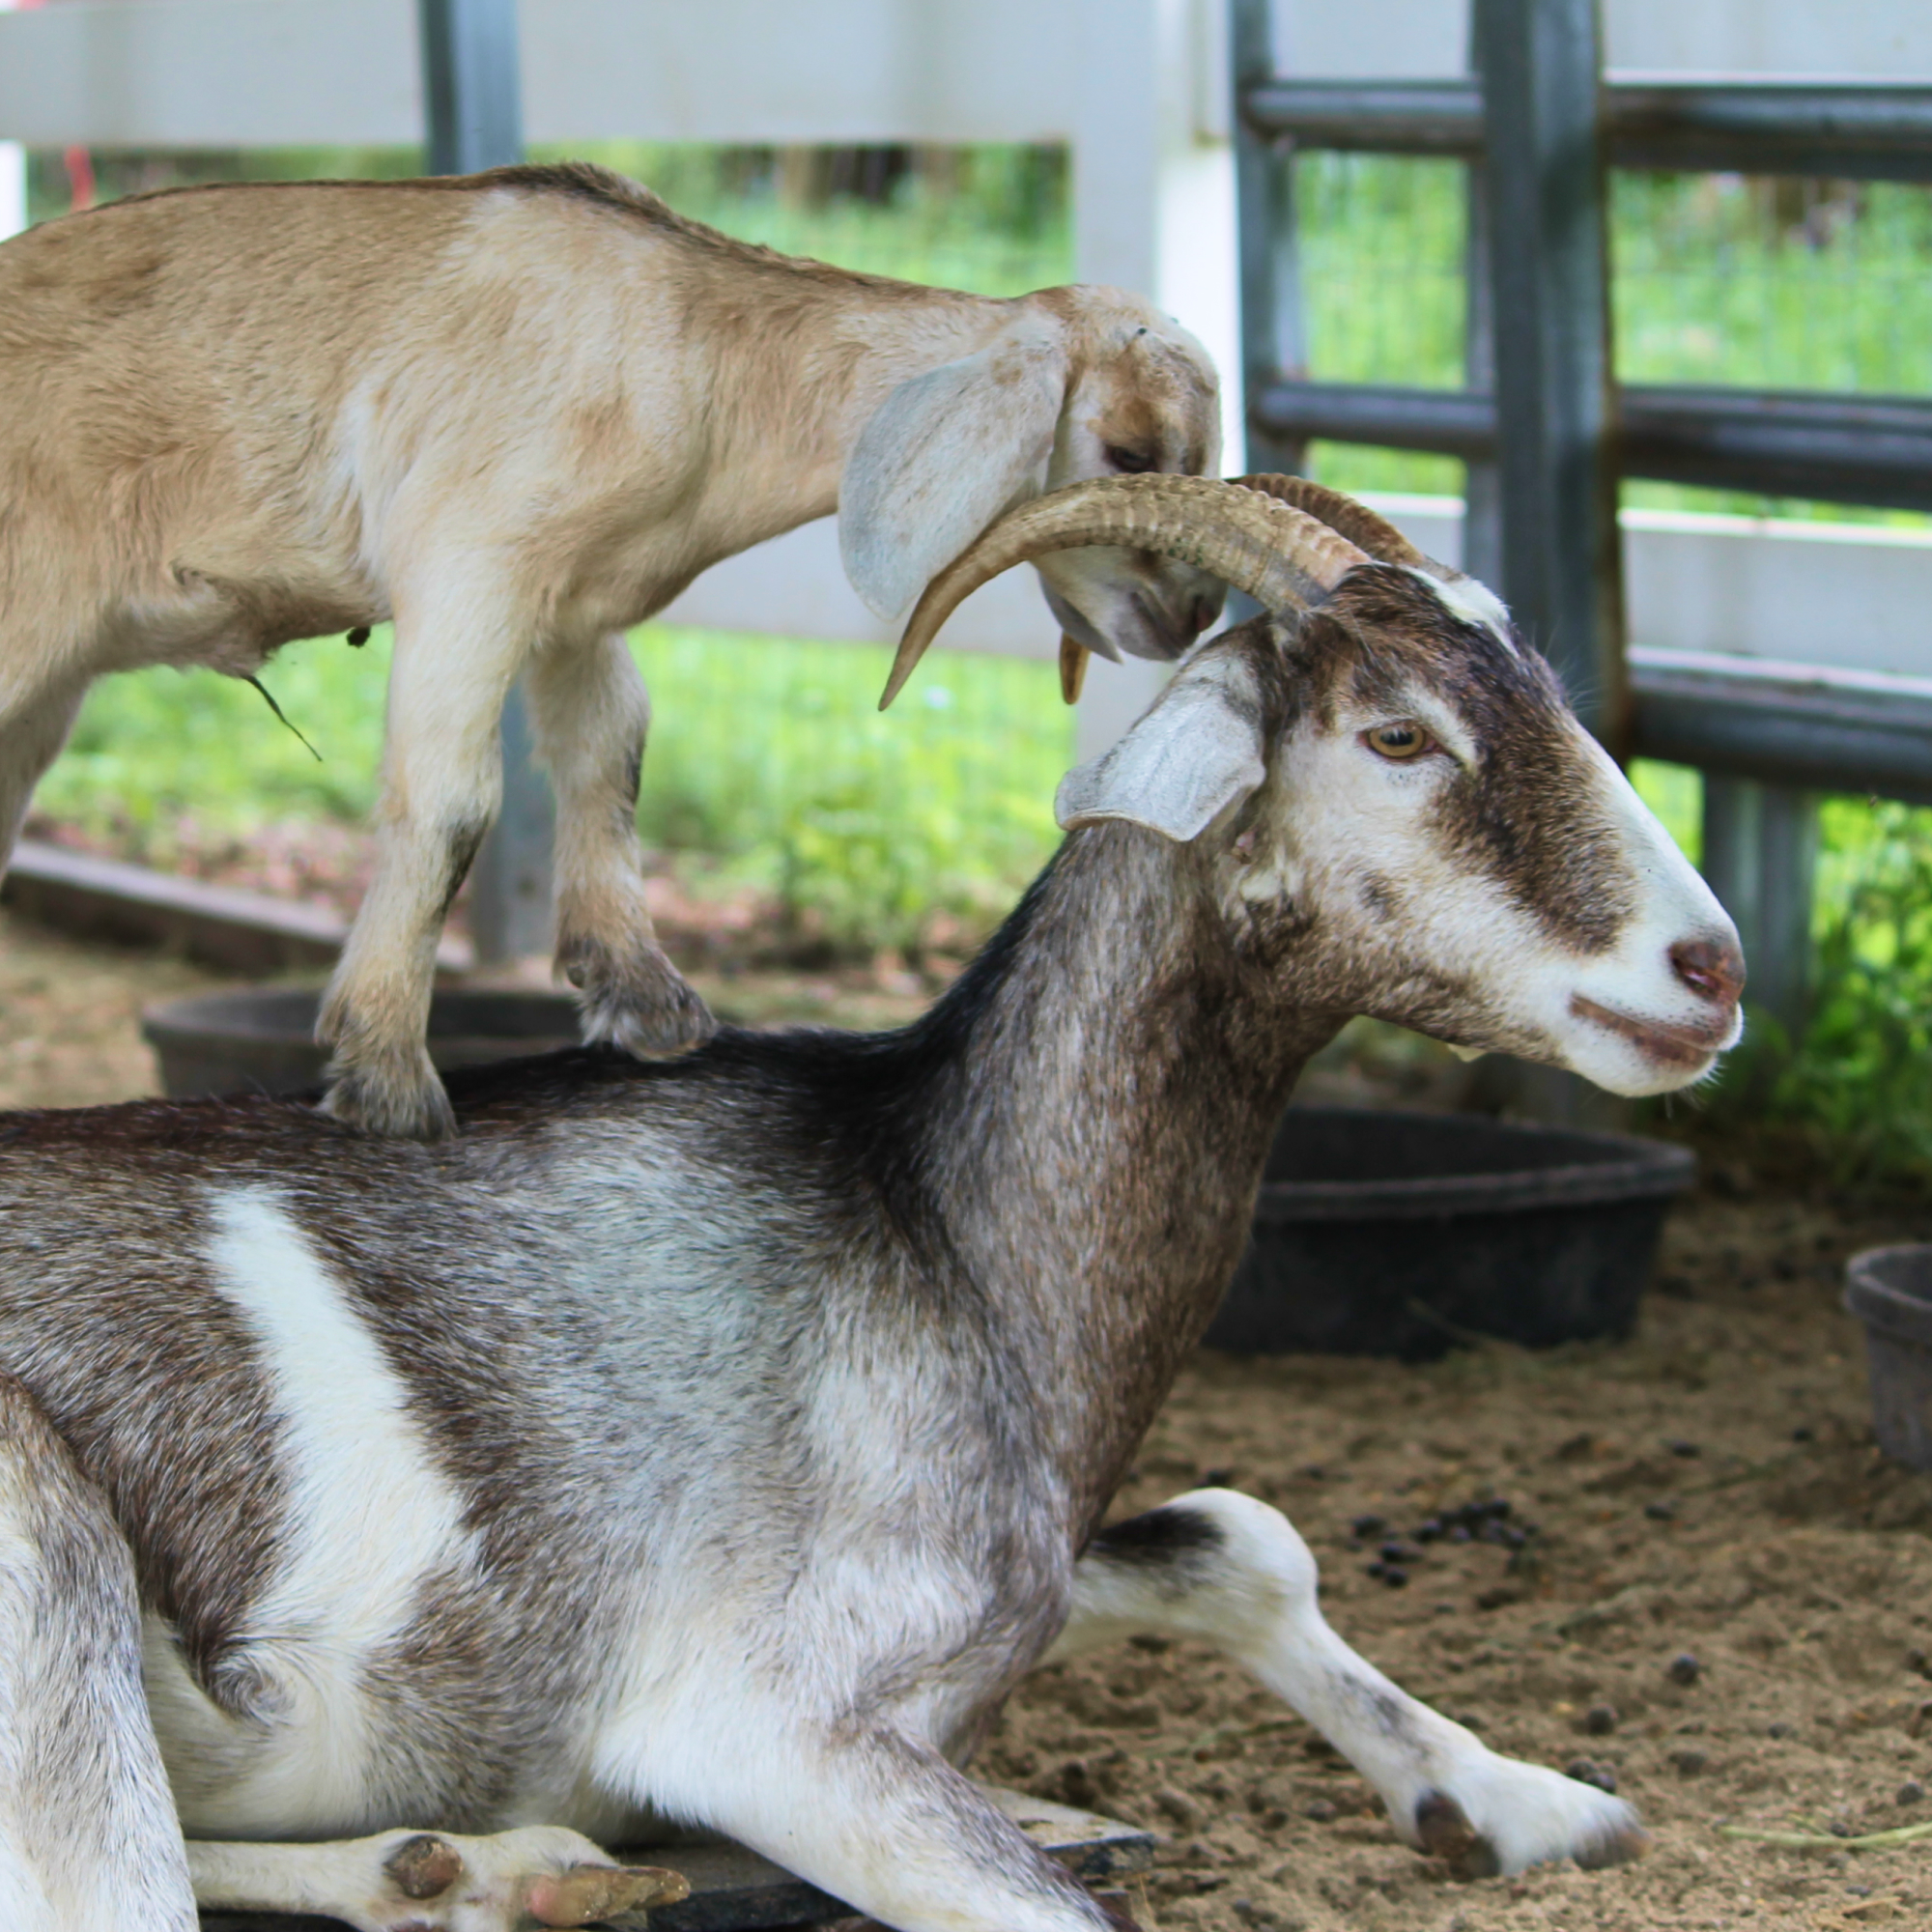 South Florida Society for the Prevention of Cruelty to Animals - Saving goats and their babies